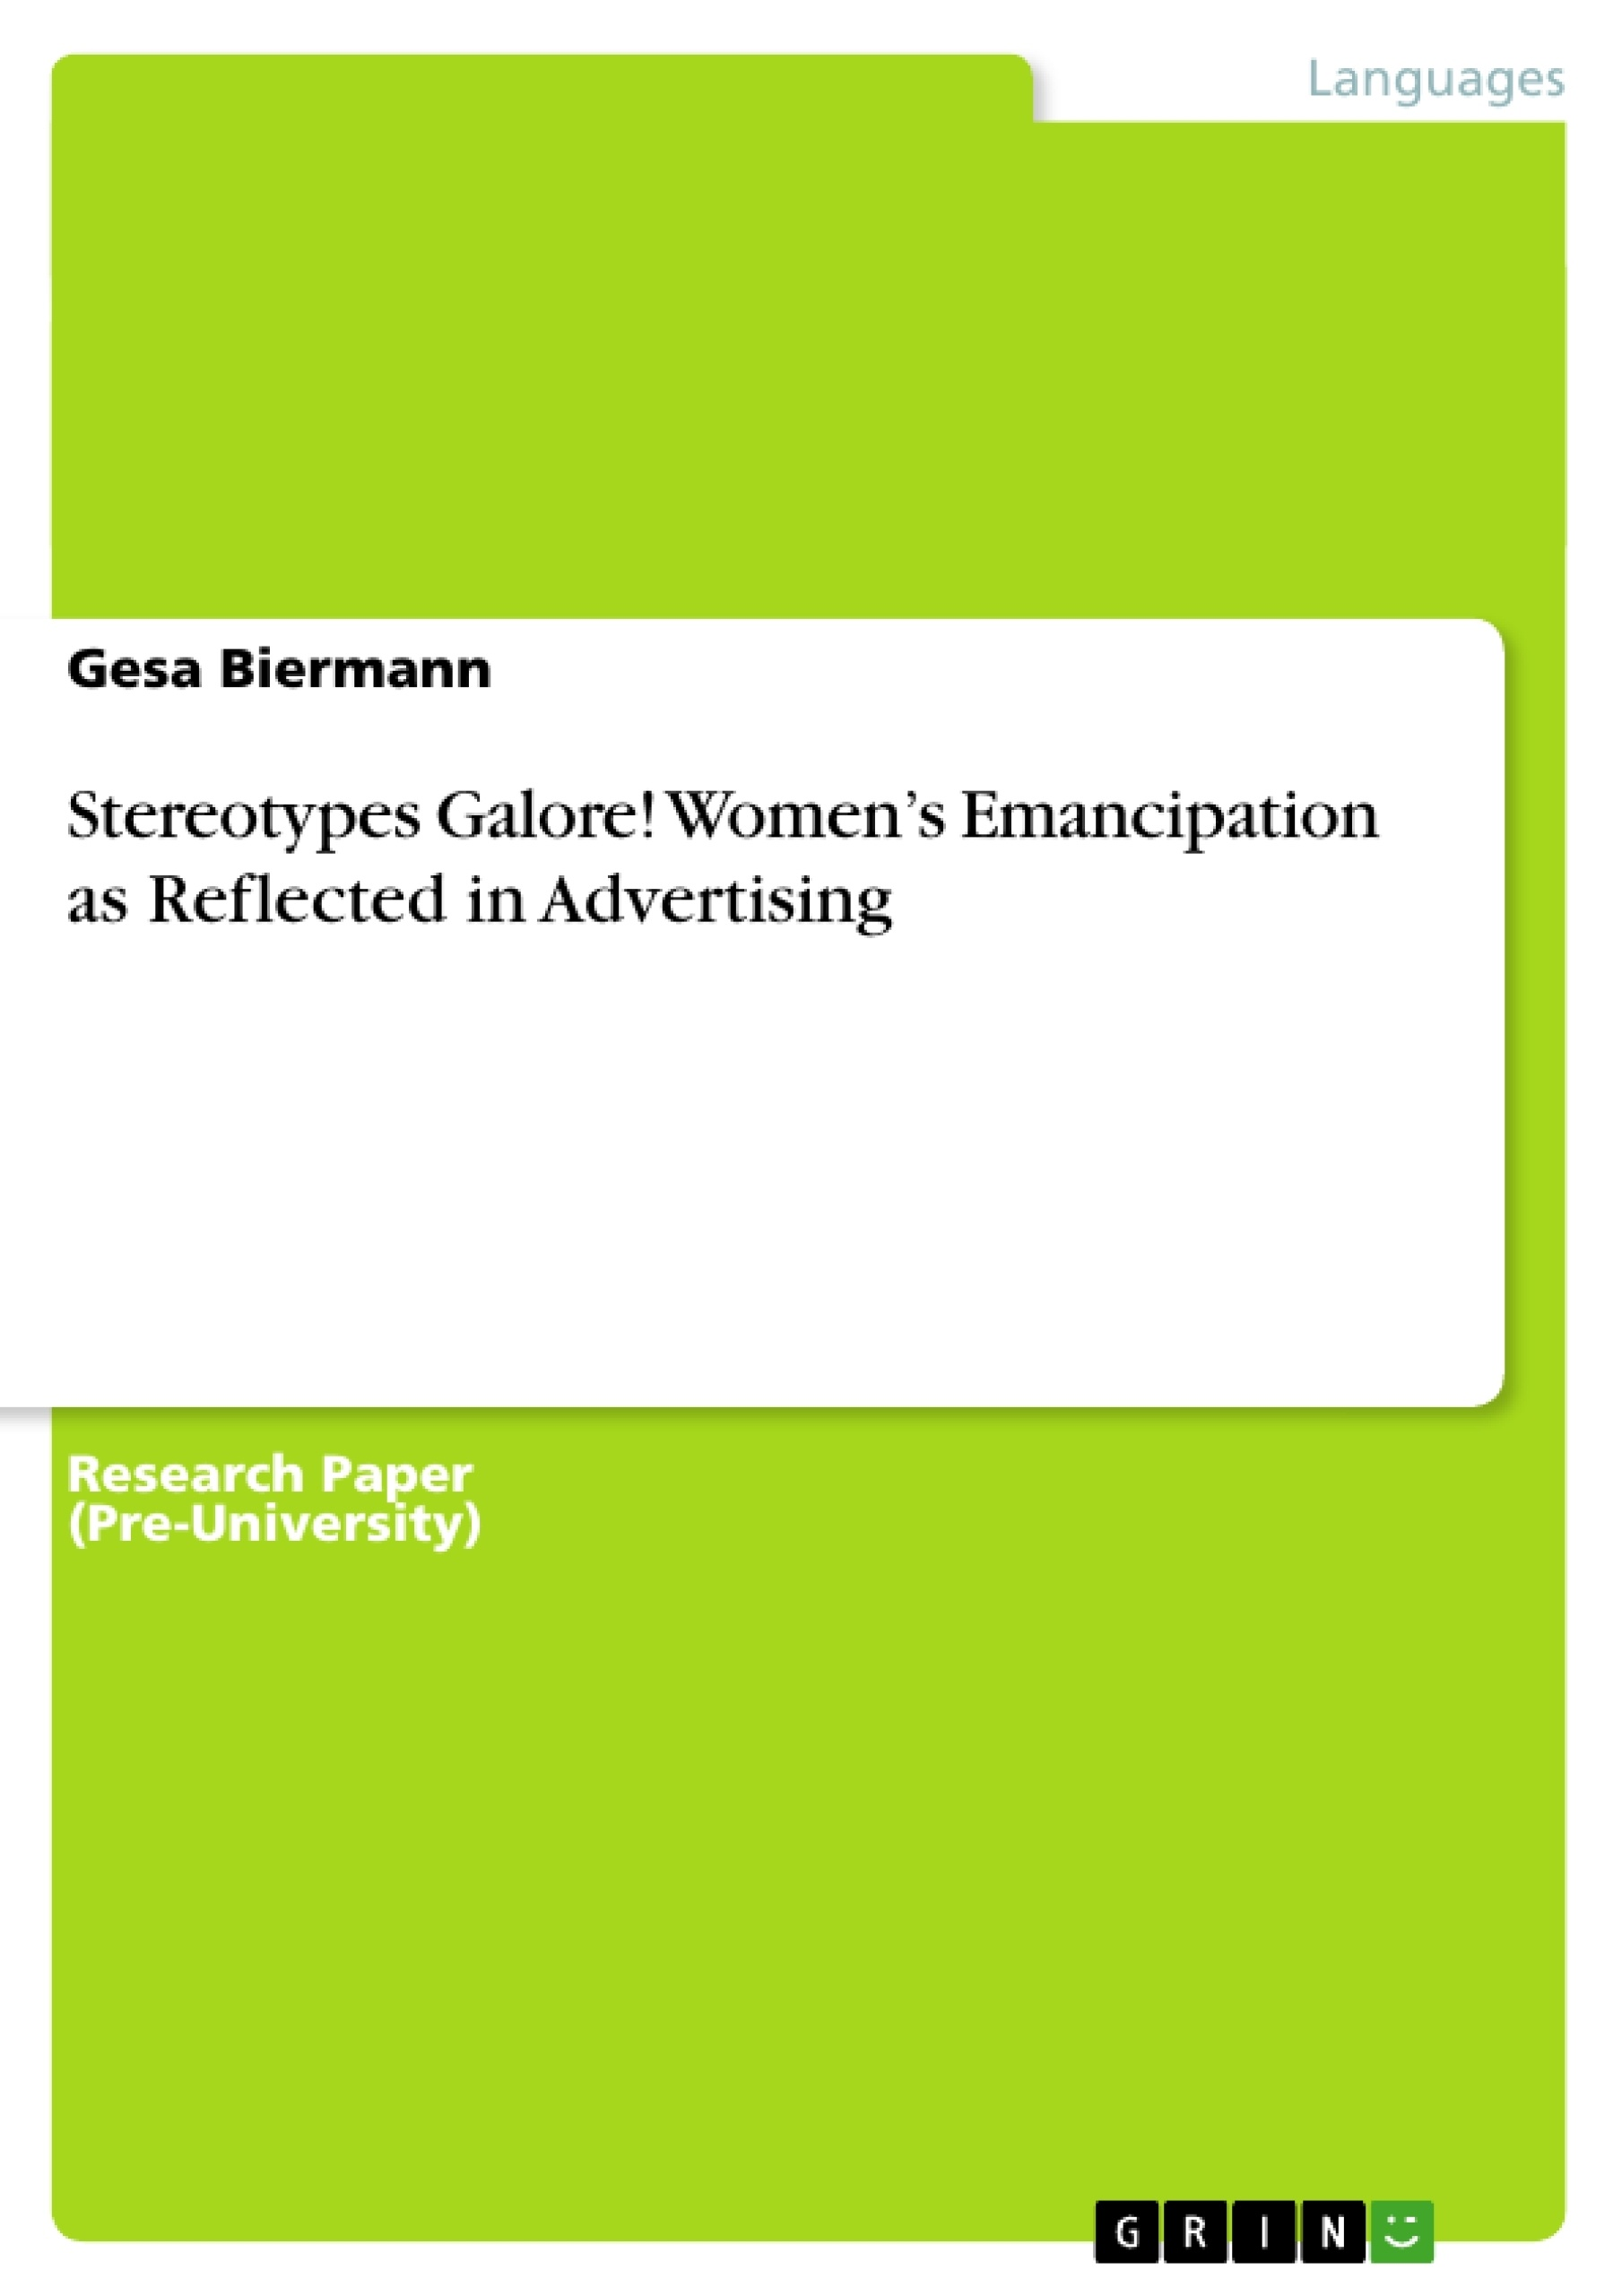 Title: Stereotypes Galore! Women's Emancipation as Reflected in Advertising